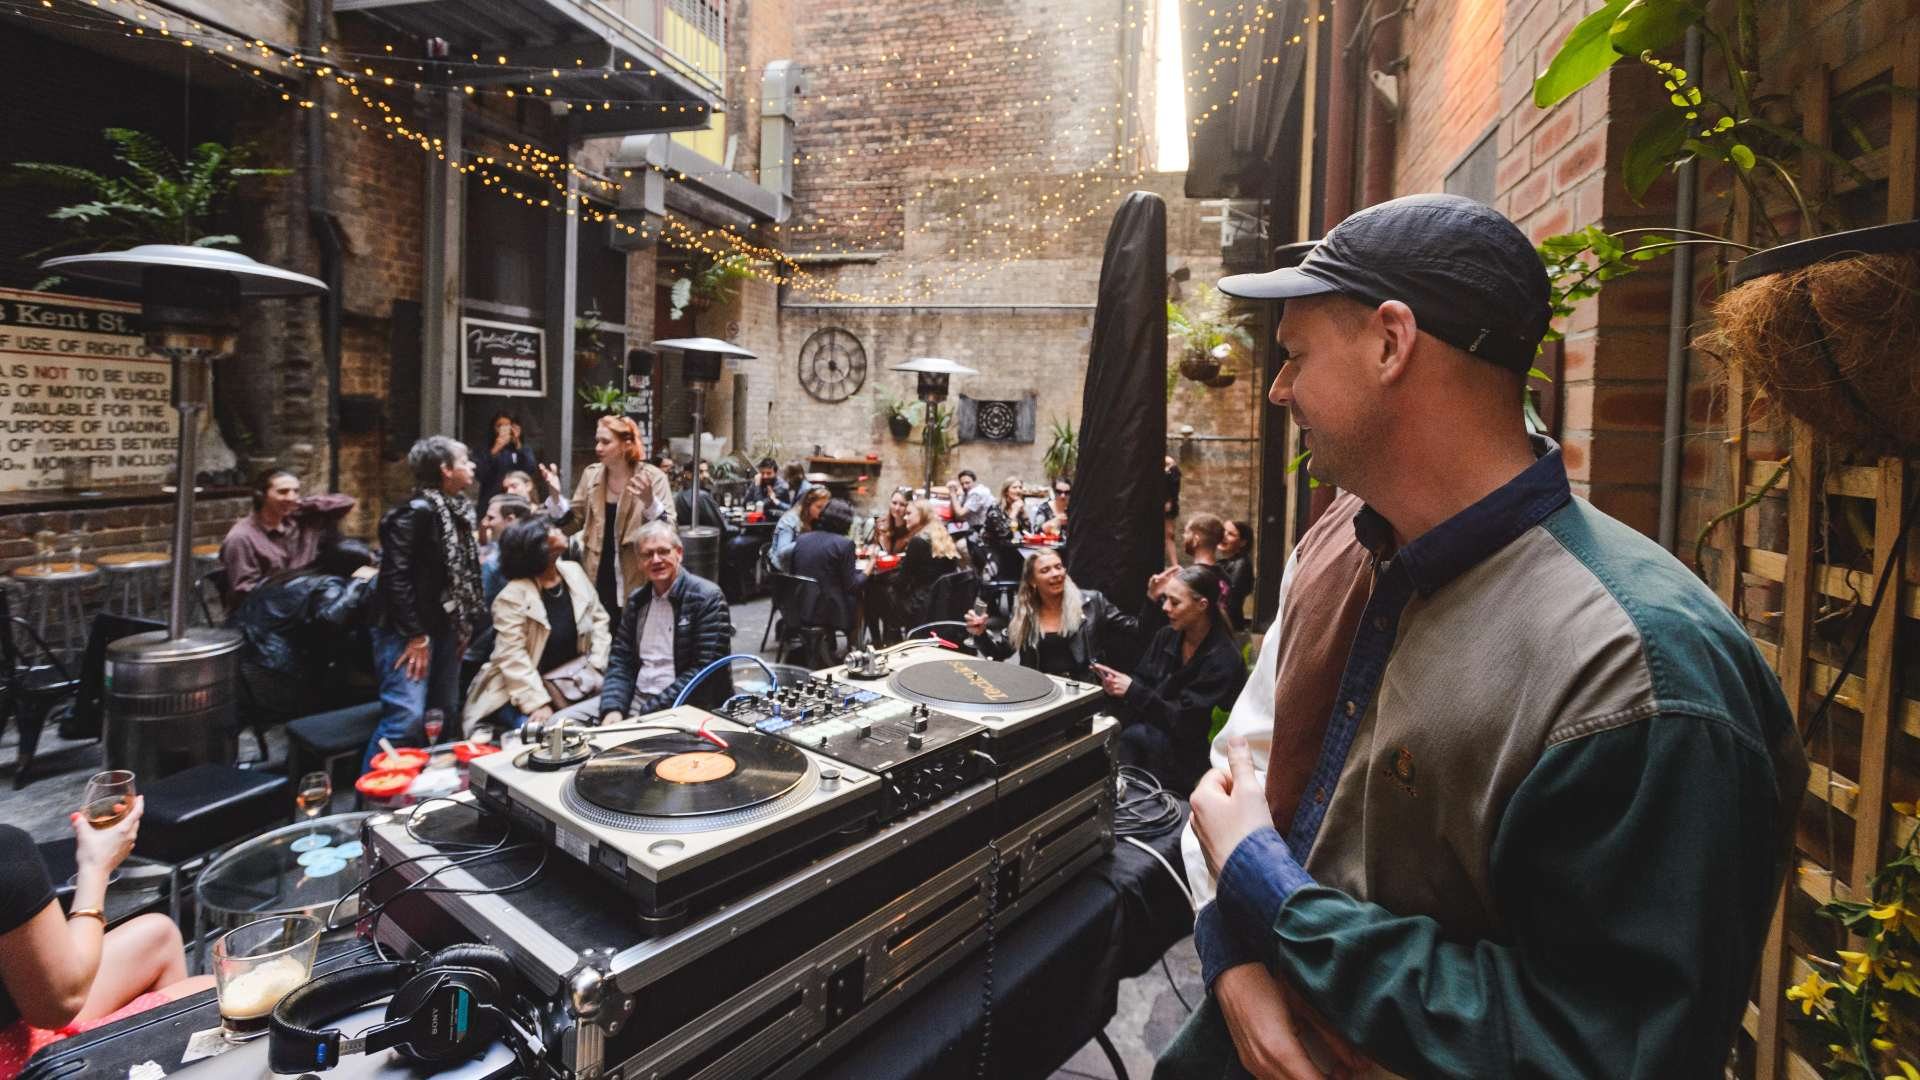 YCK Laneways Is the New CBD Cultural Precinct That's Launching with a Six-Week Block Party